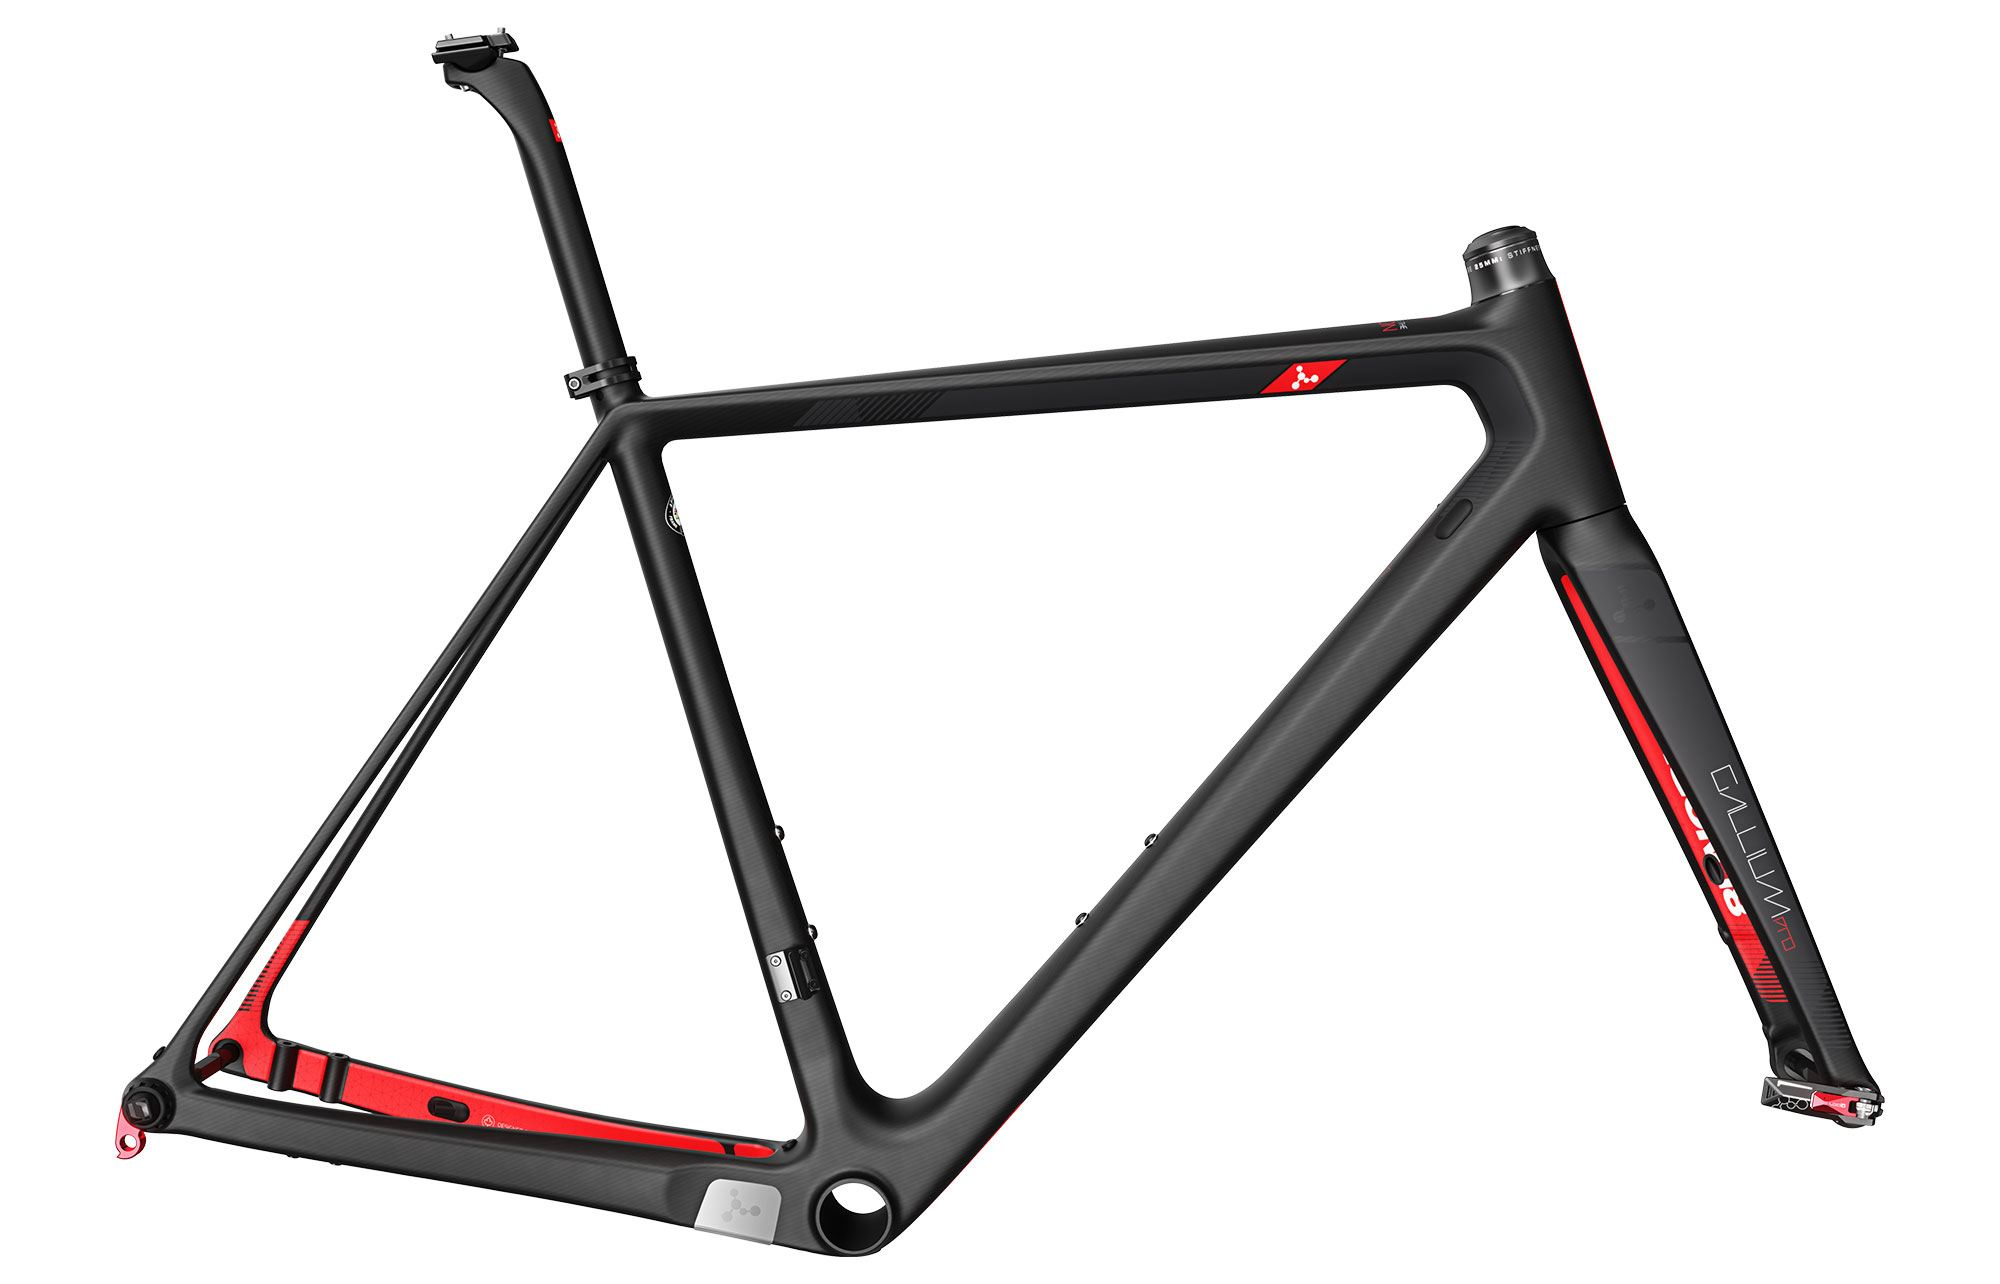 detail ARGON 18 GALLIUM PRO DISC RÁMOVÁ SADA 2019 Black/Grey Matte